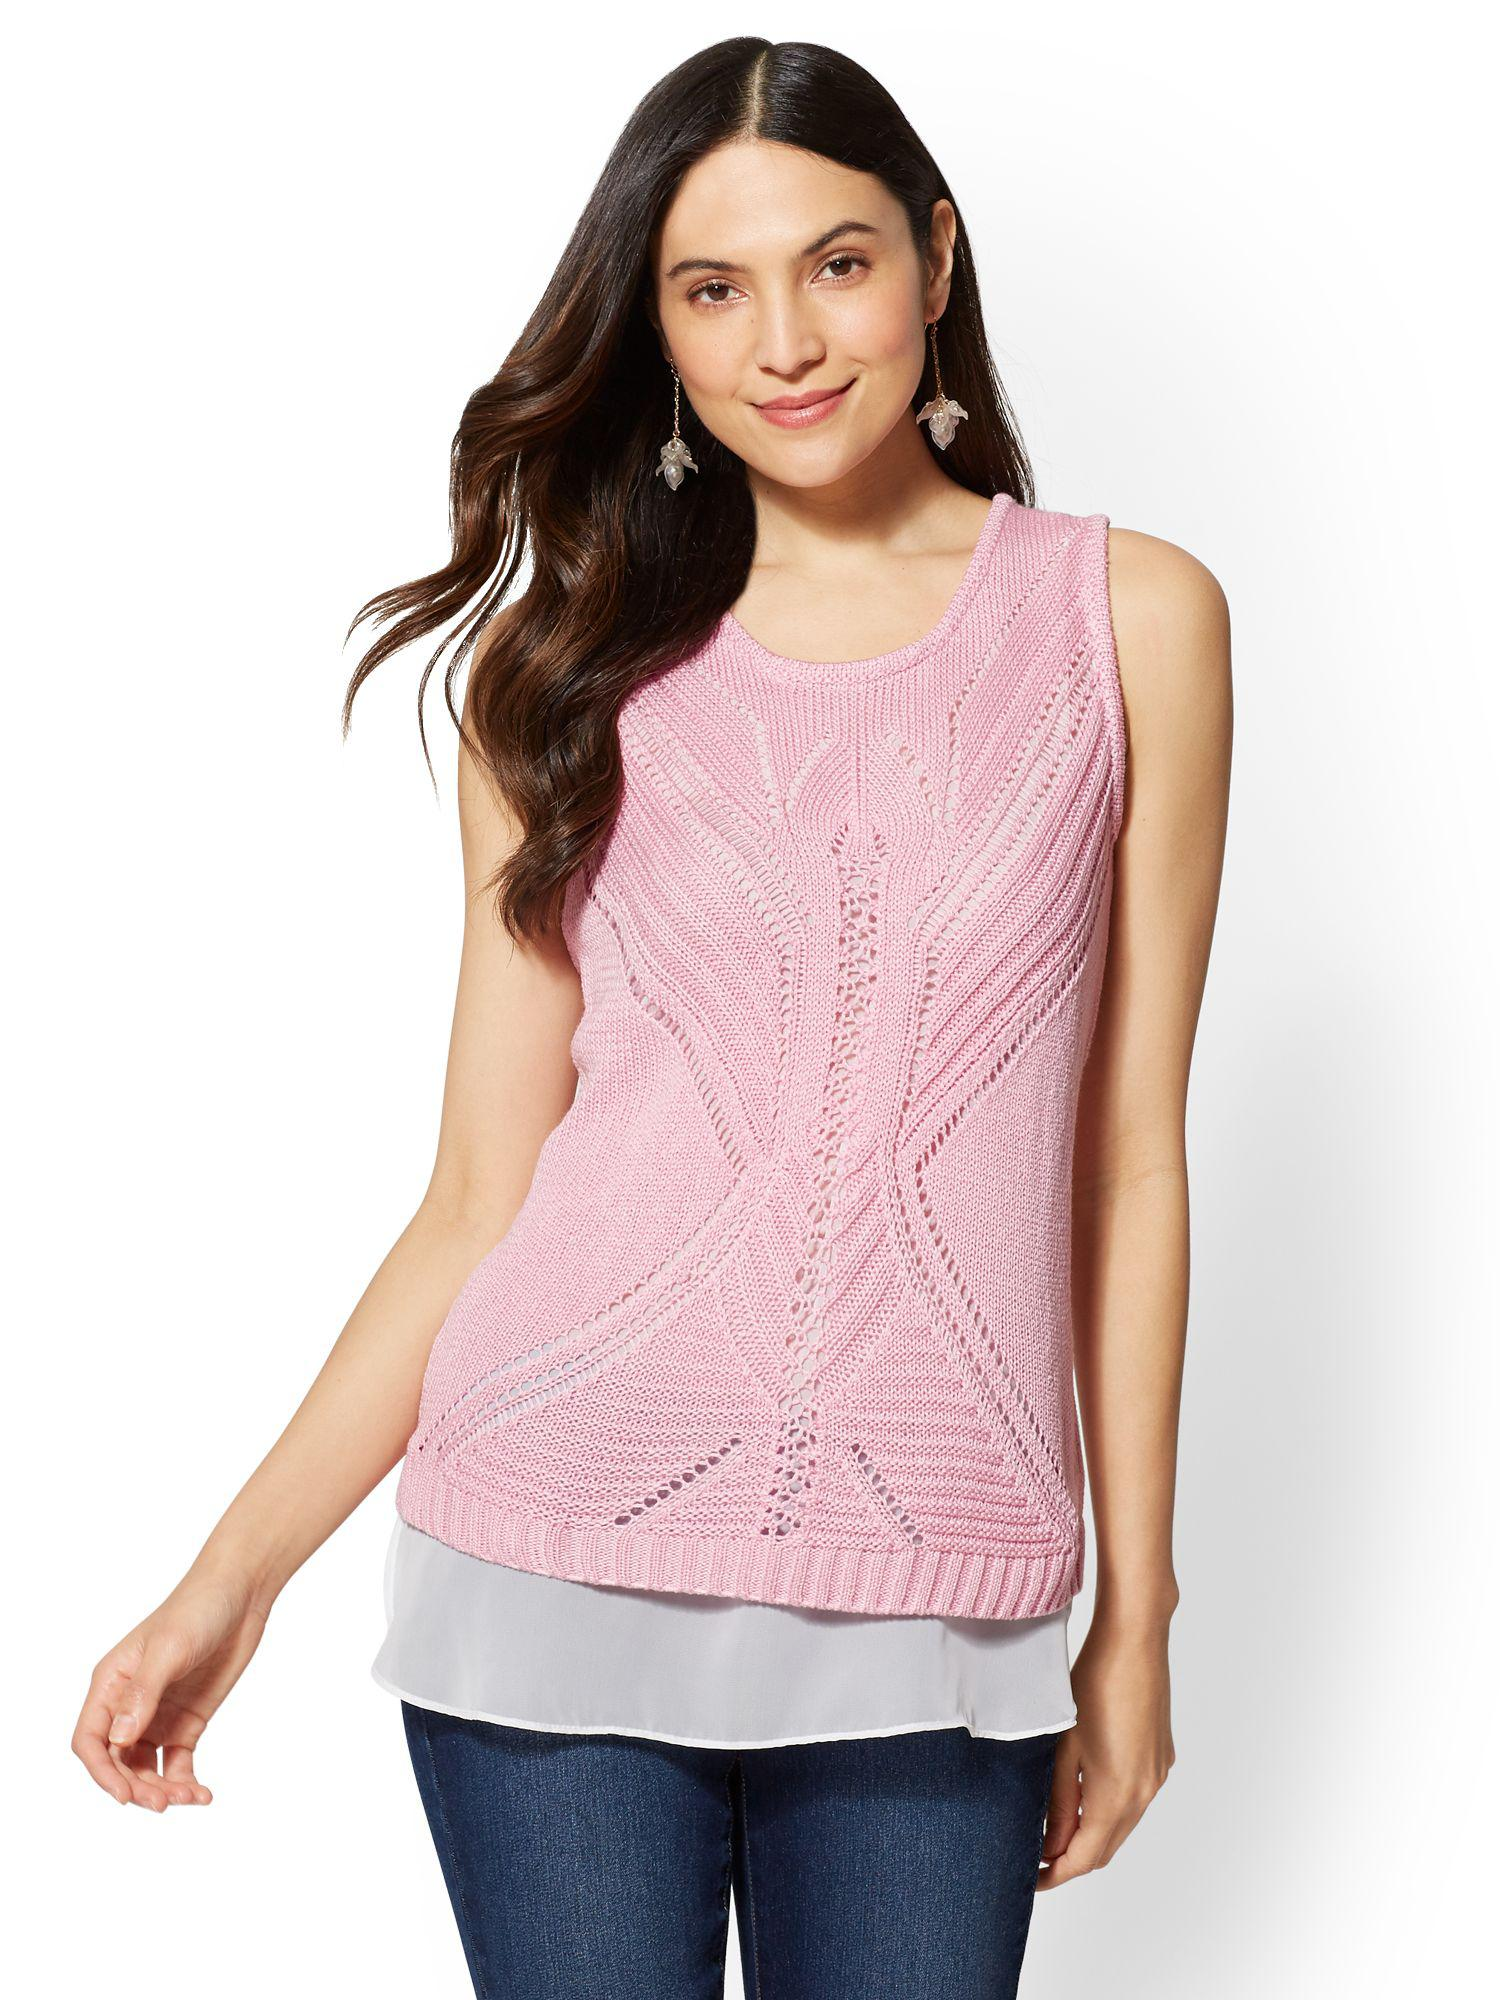 a29817fbbdb0 New York & Company Pointelle-knit Twofer Sweater Top in Pink - Lyst